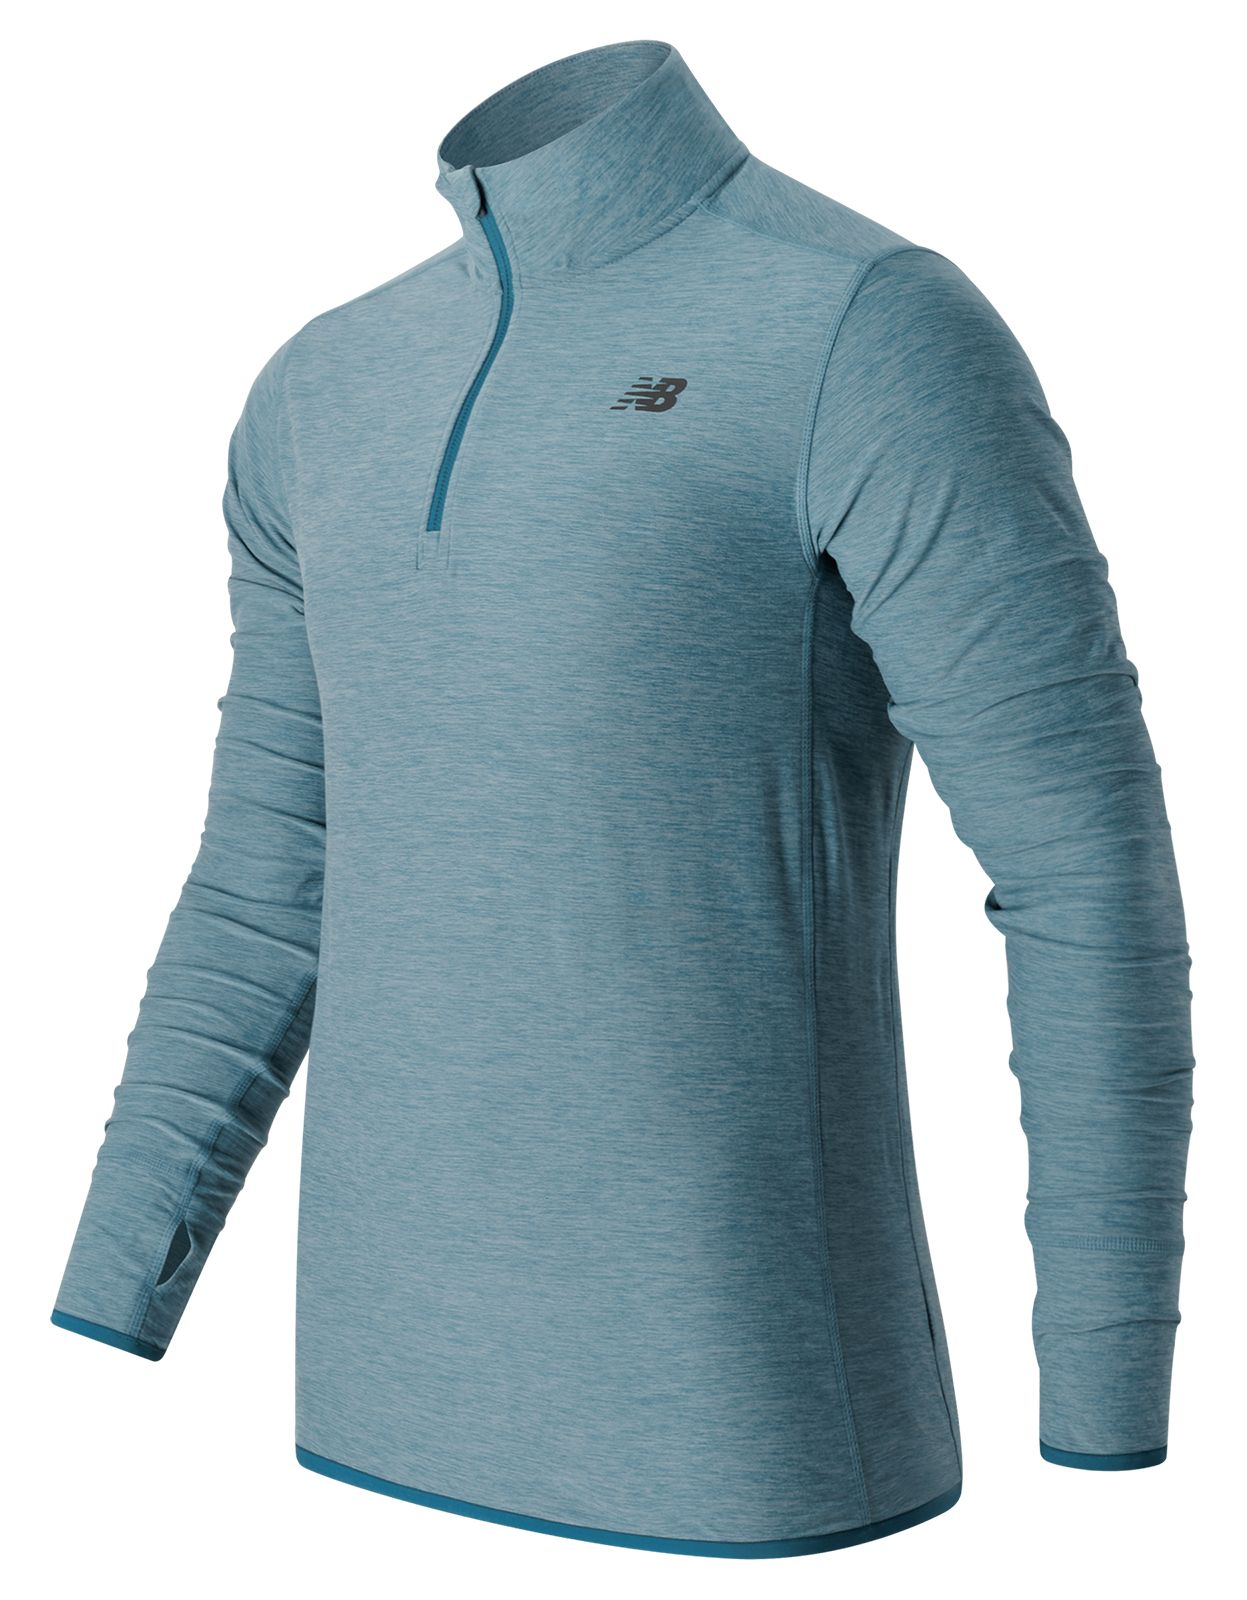 New Balance : N Transit Quarter Zip : Men's Performance : MT53030RIH